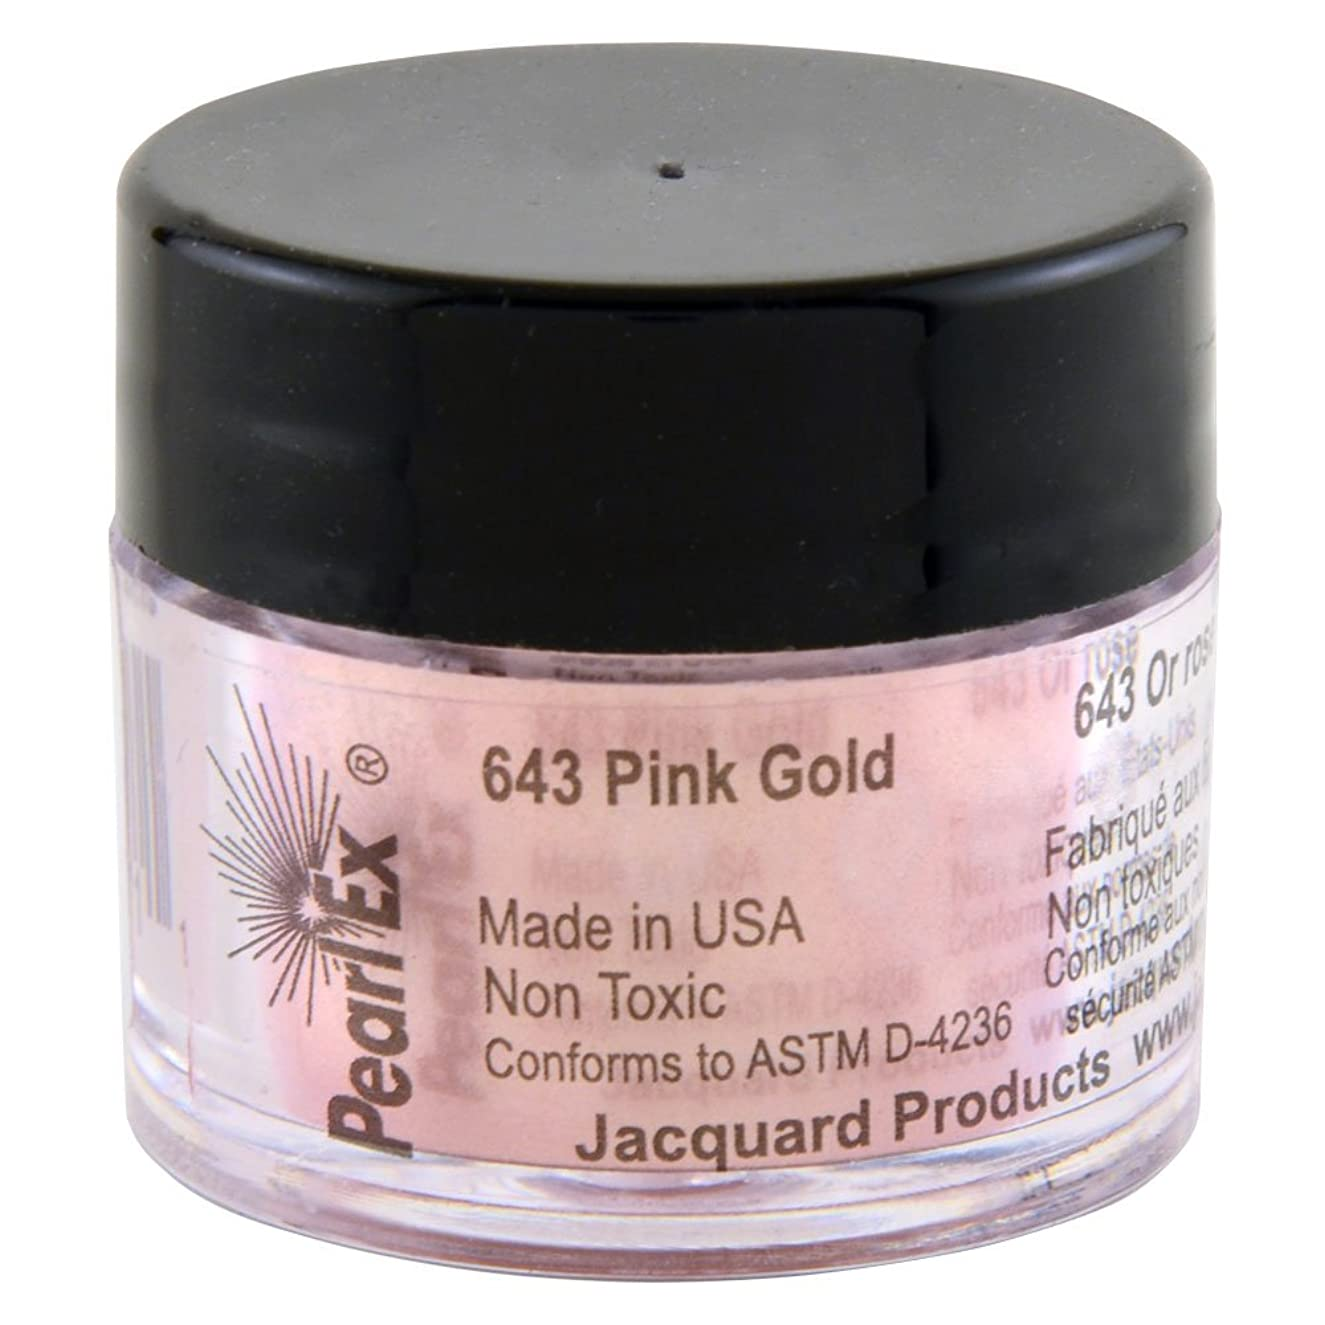 Jacquard Products Pearl Ex Powdered Pigments, 3 Grams: Pink Gold